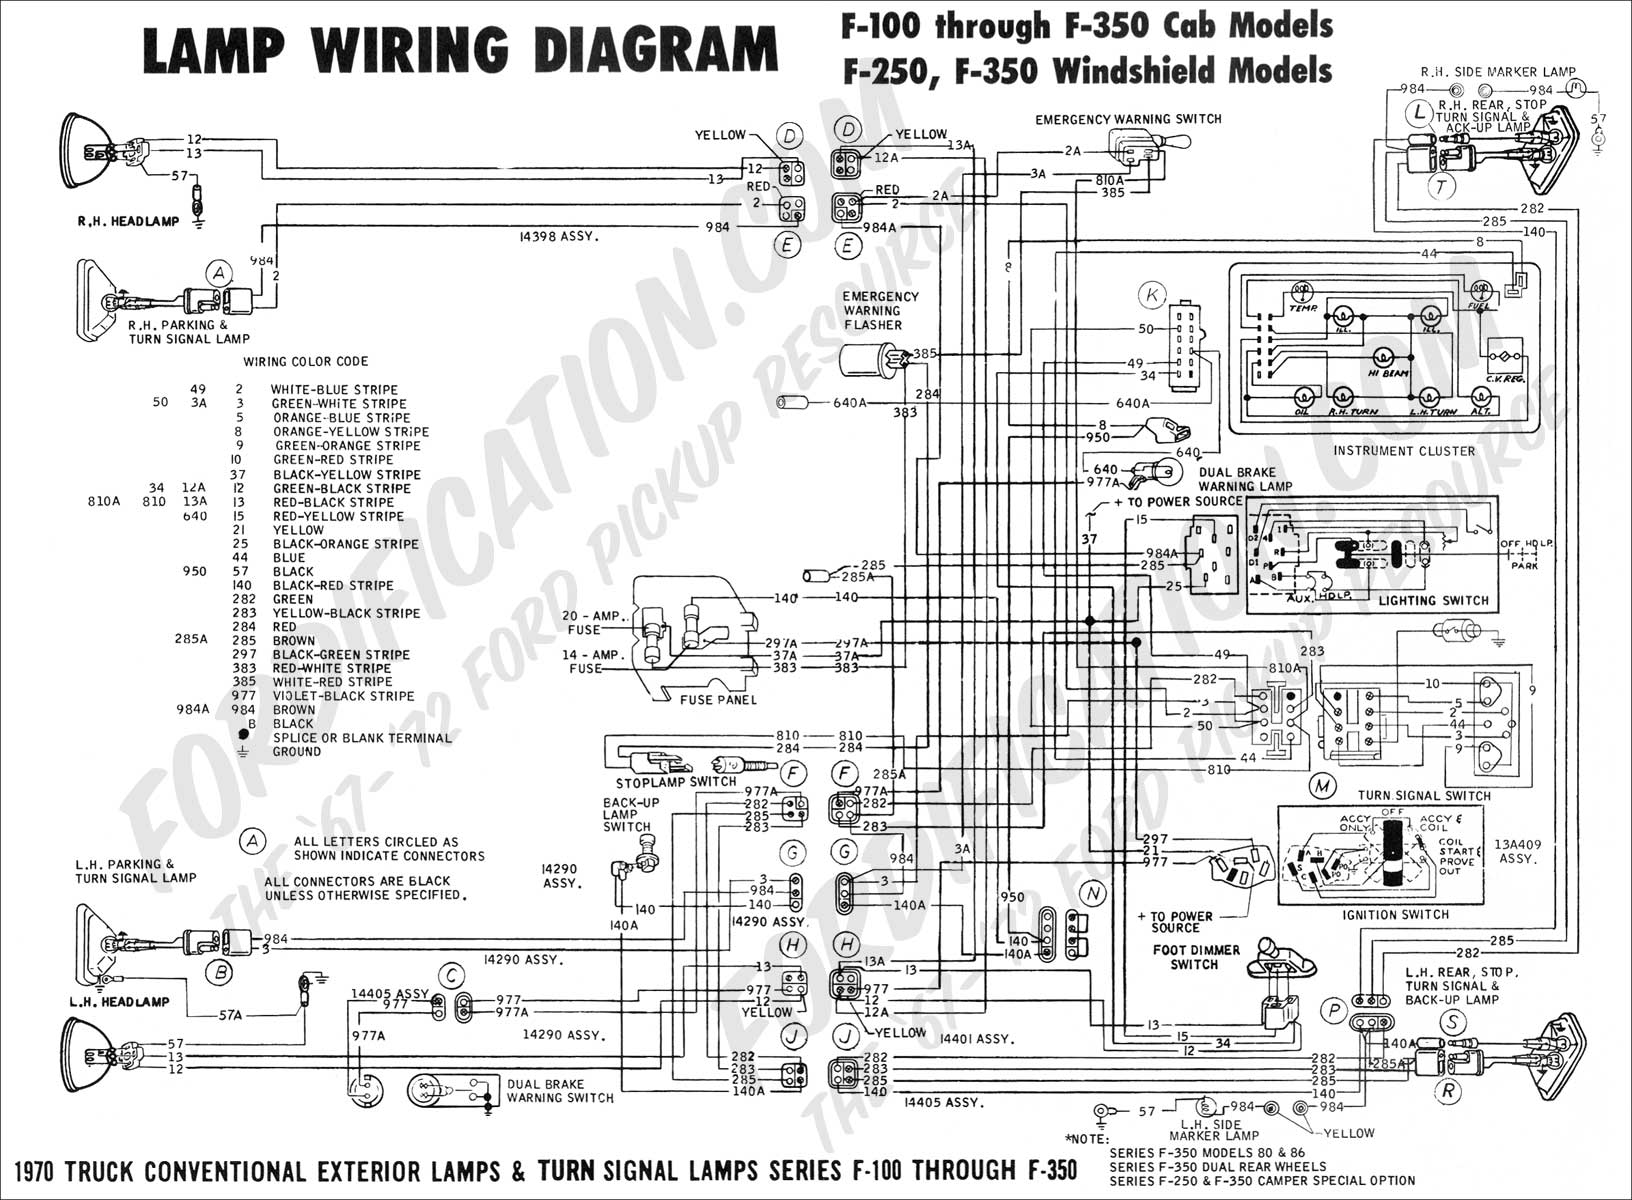 wiring diagram_70ext lights01?resize=665%2C489 ford f150 right rear taillight is out where is fuse and how 1999 ford f150 turn signal wiring diagram at crackthecode.co